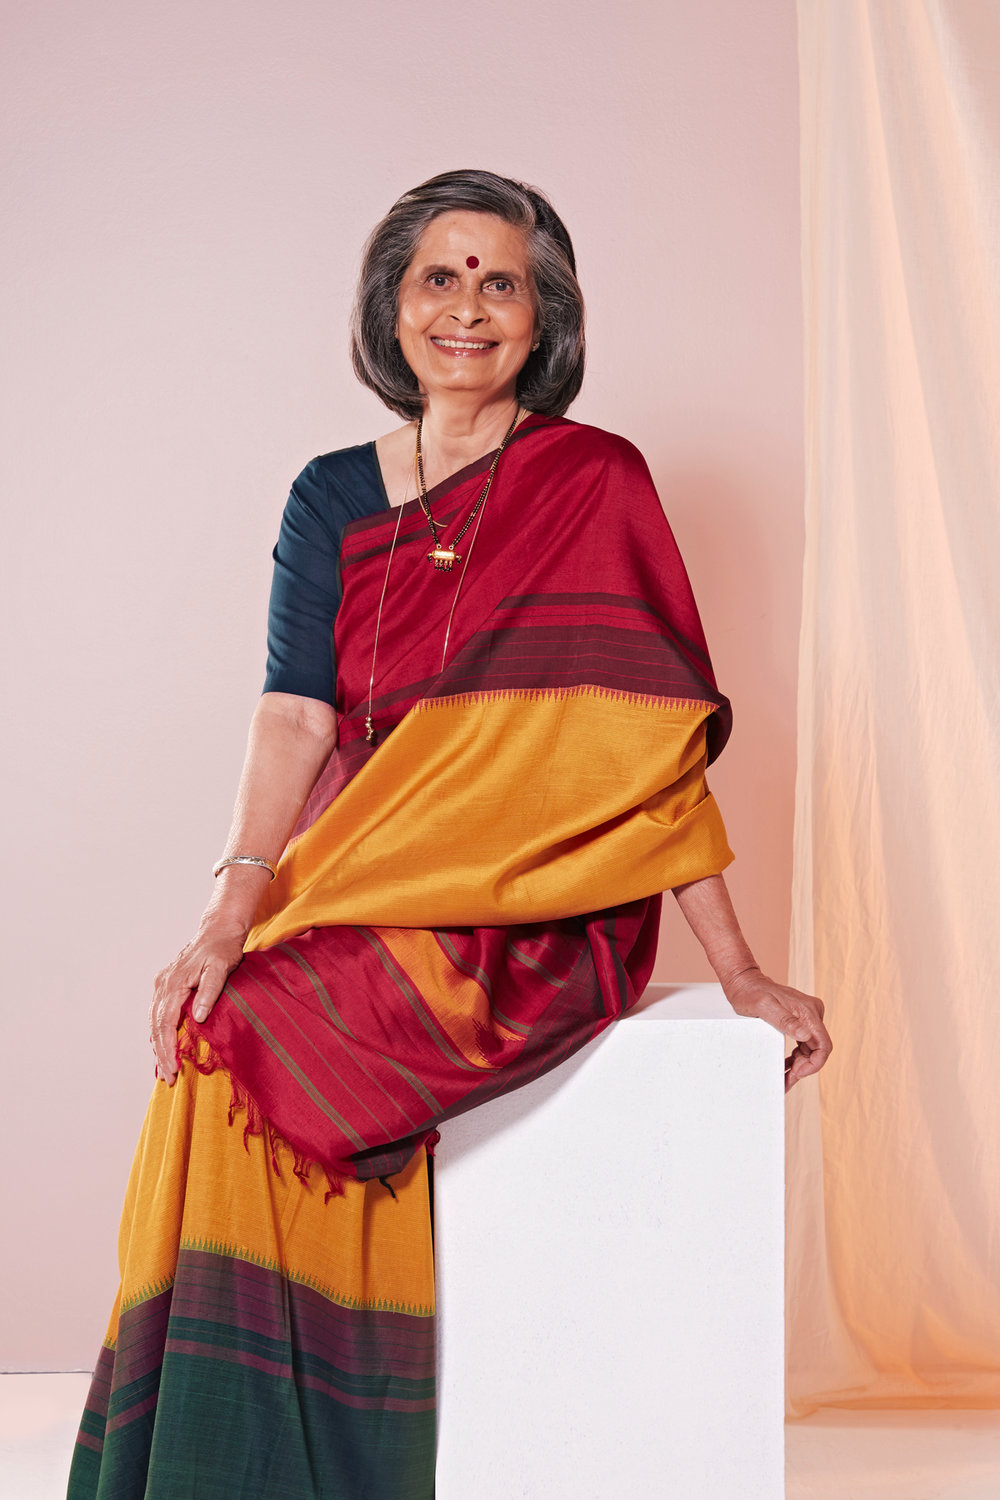 Gladys survived 50 rounds of radiation therapy to become an active figure in The Pink Sari Project.